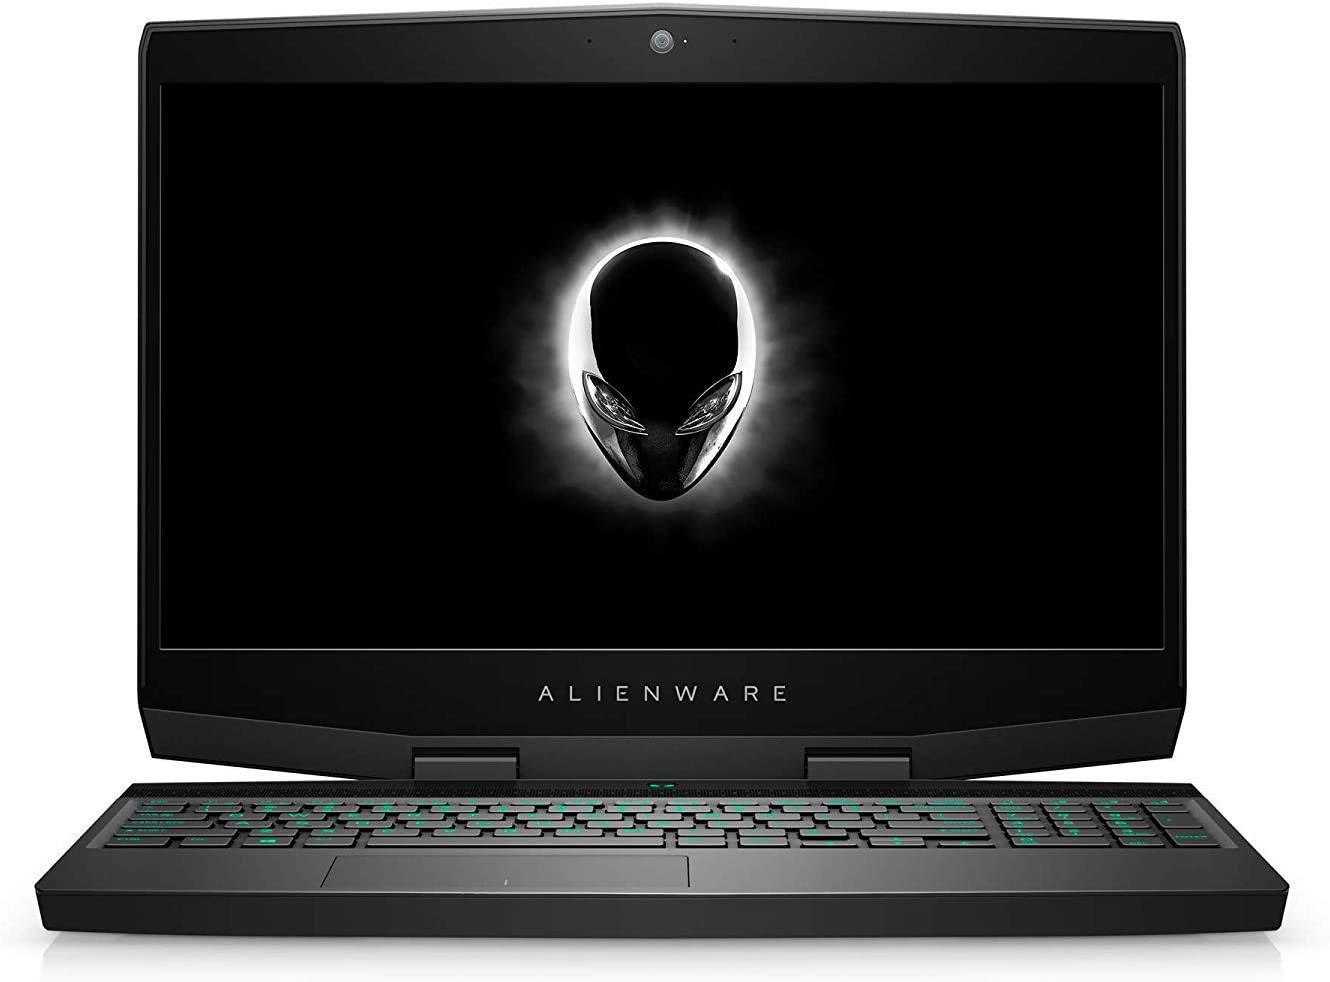 "Alienware M15 Thin and Light 15"" Gaming Laptop i7-8750H, GTX 1070 Max Q, 128GB NVMe SSD + 1TB SSHD, 16GB DDR4 2666Mhz, 17.9mm Thick & 4.78lbs, Magnesium Alloy Chassis (Renewed)"